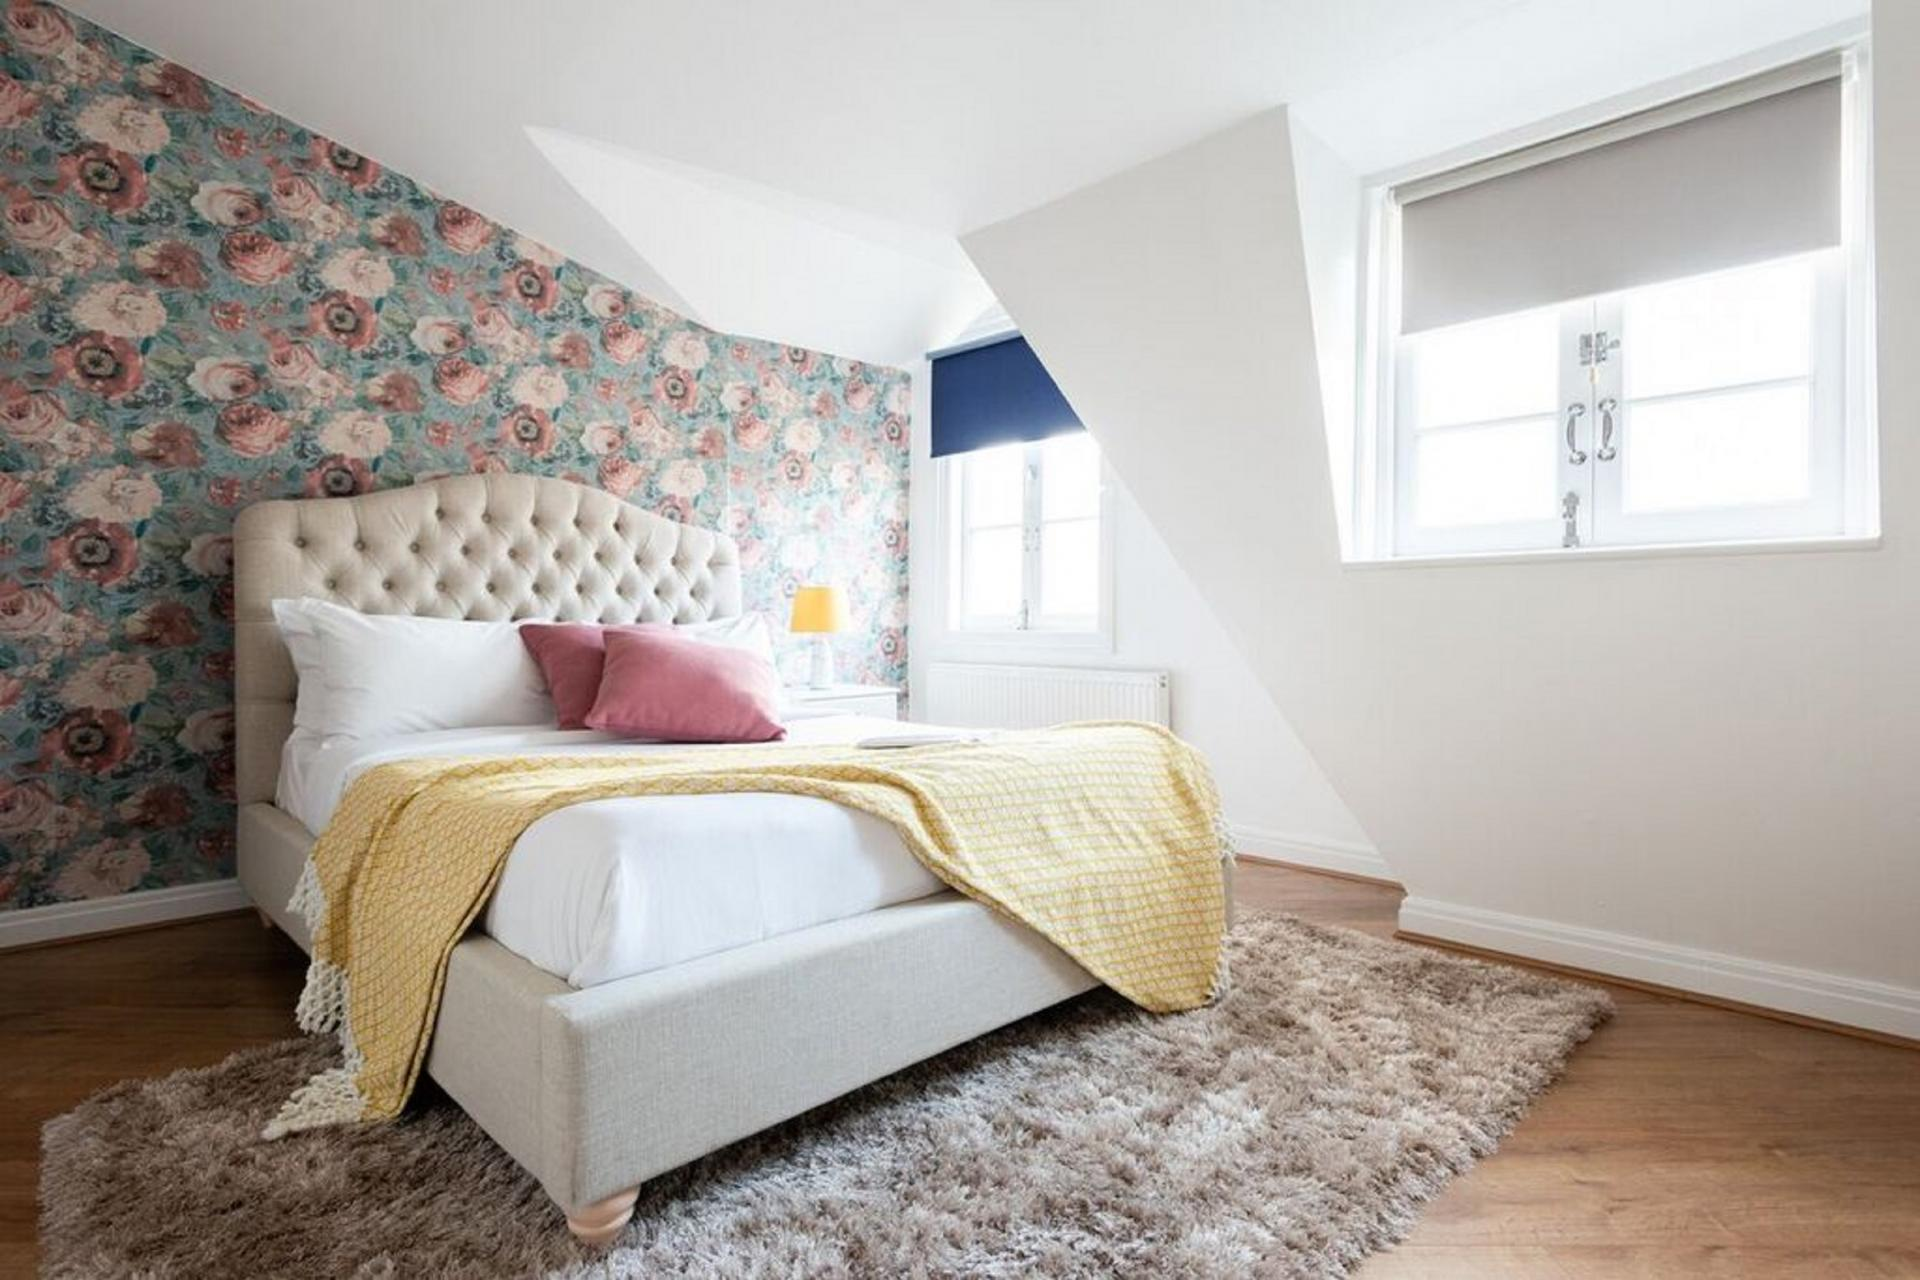 Bed at The Paddington Mews, Paddington, London - Citybase Apartments